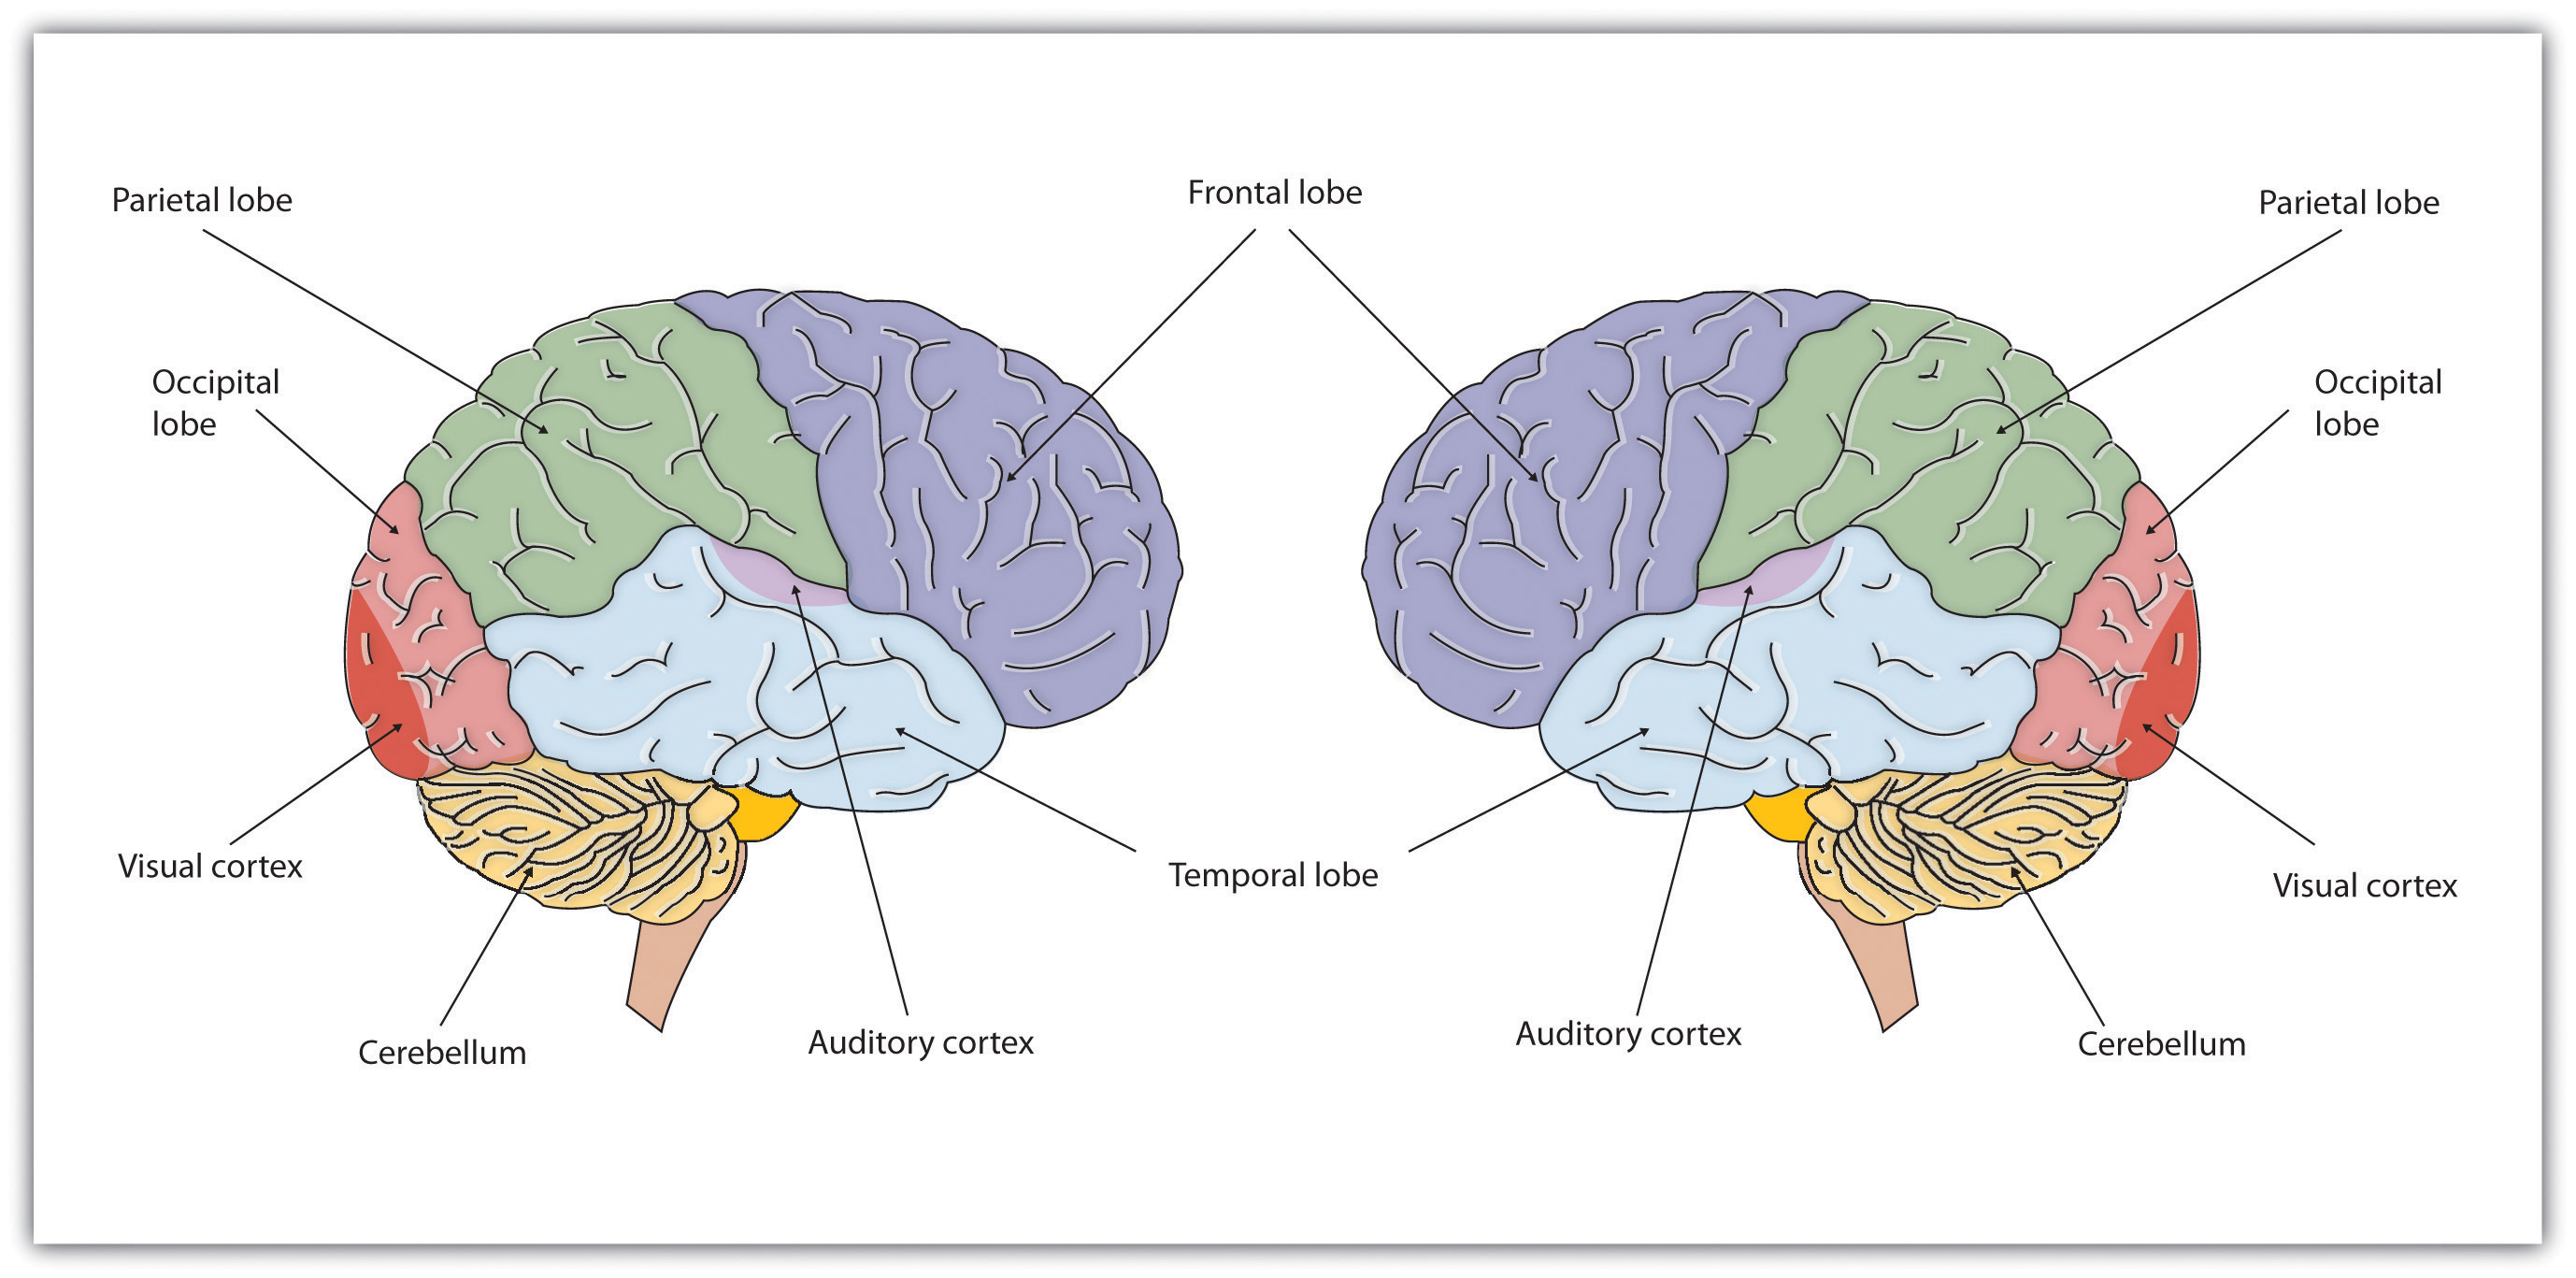 The two brain hemispheres